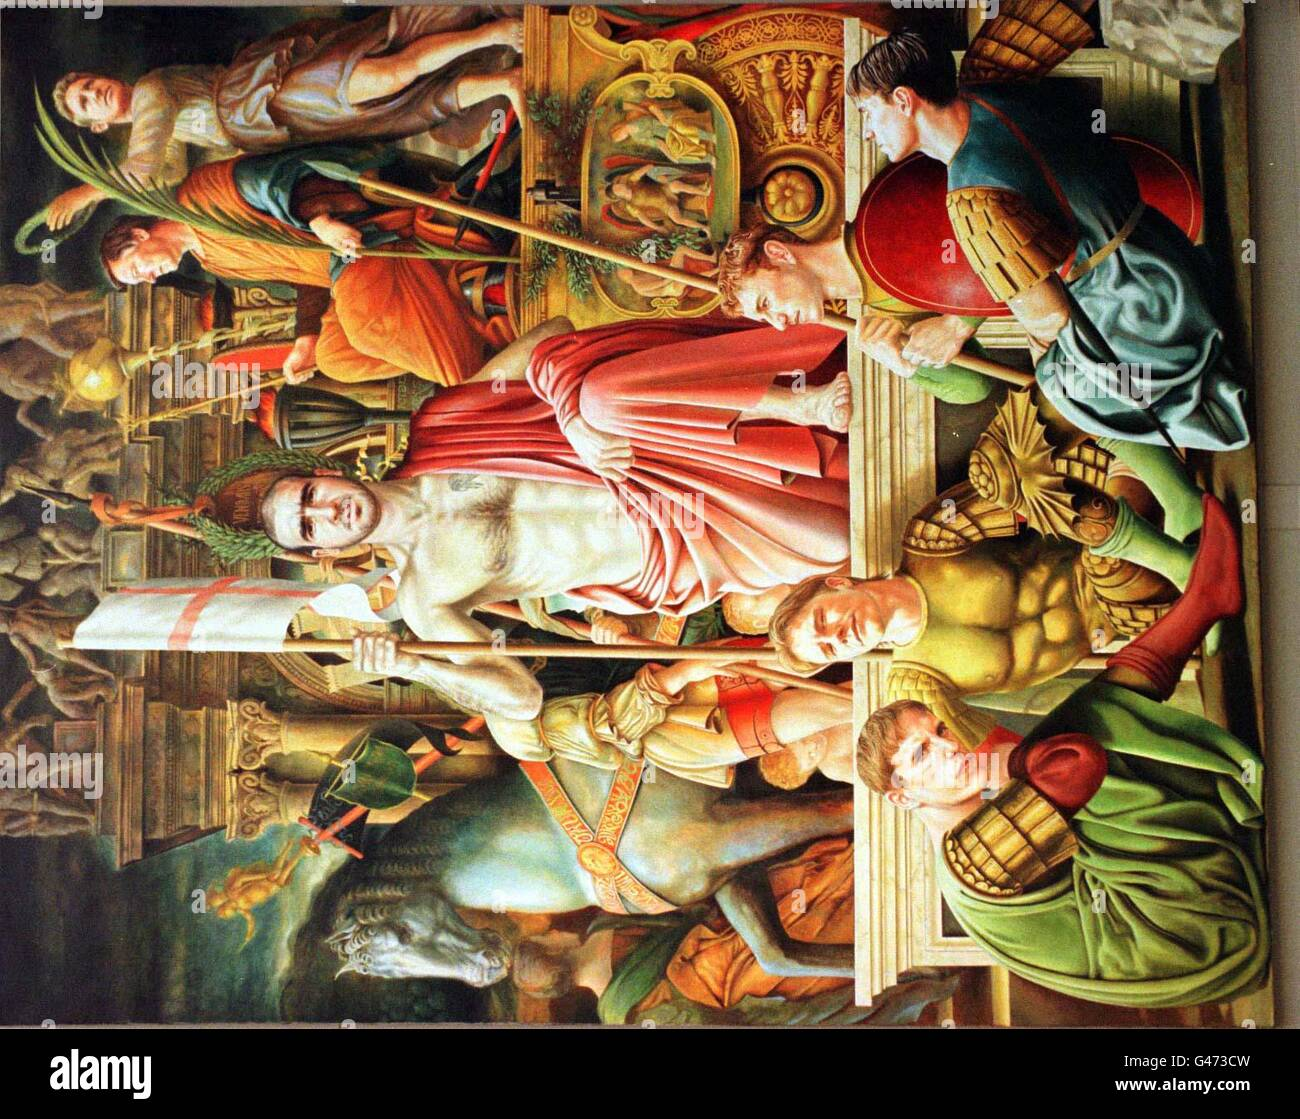 Arts Cantona Painting Stock Photo Alamy